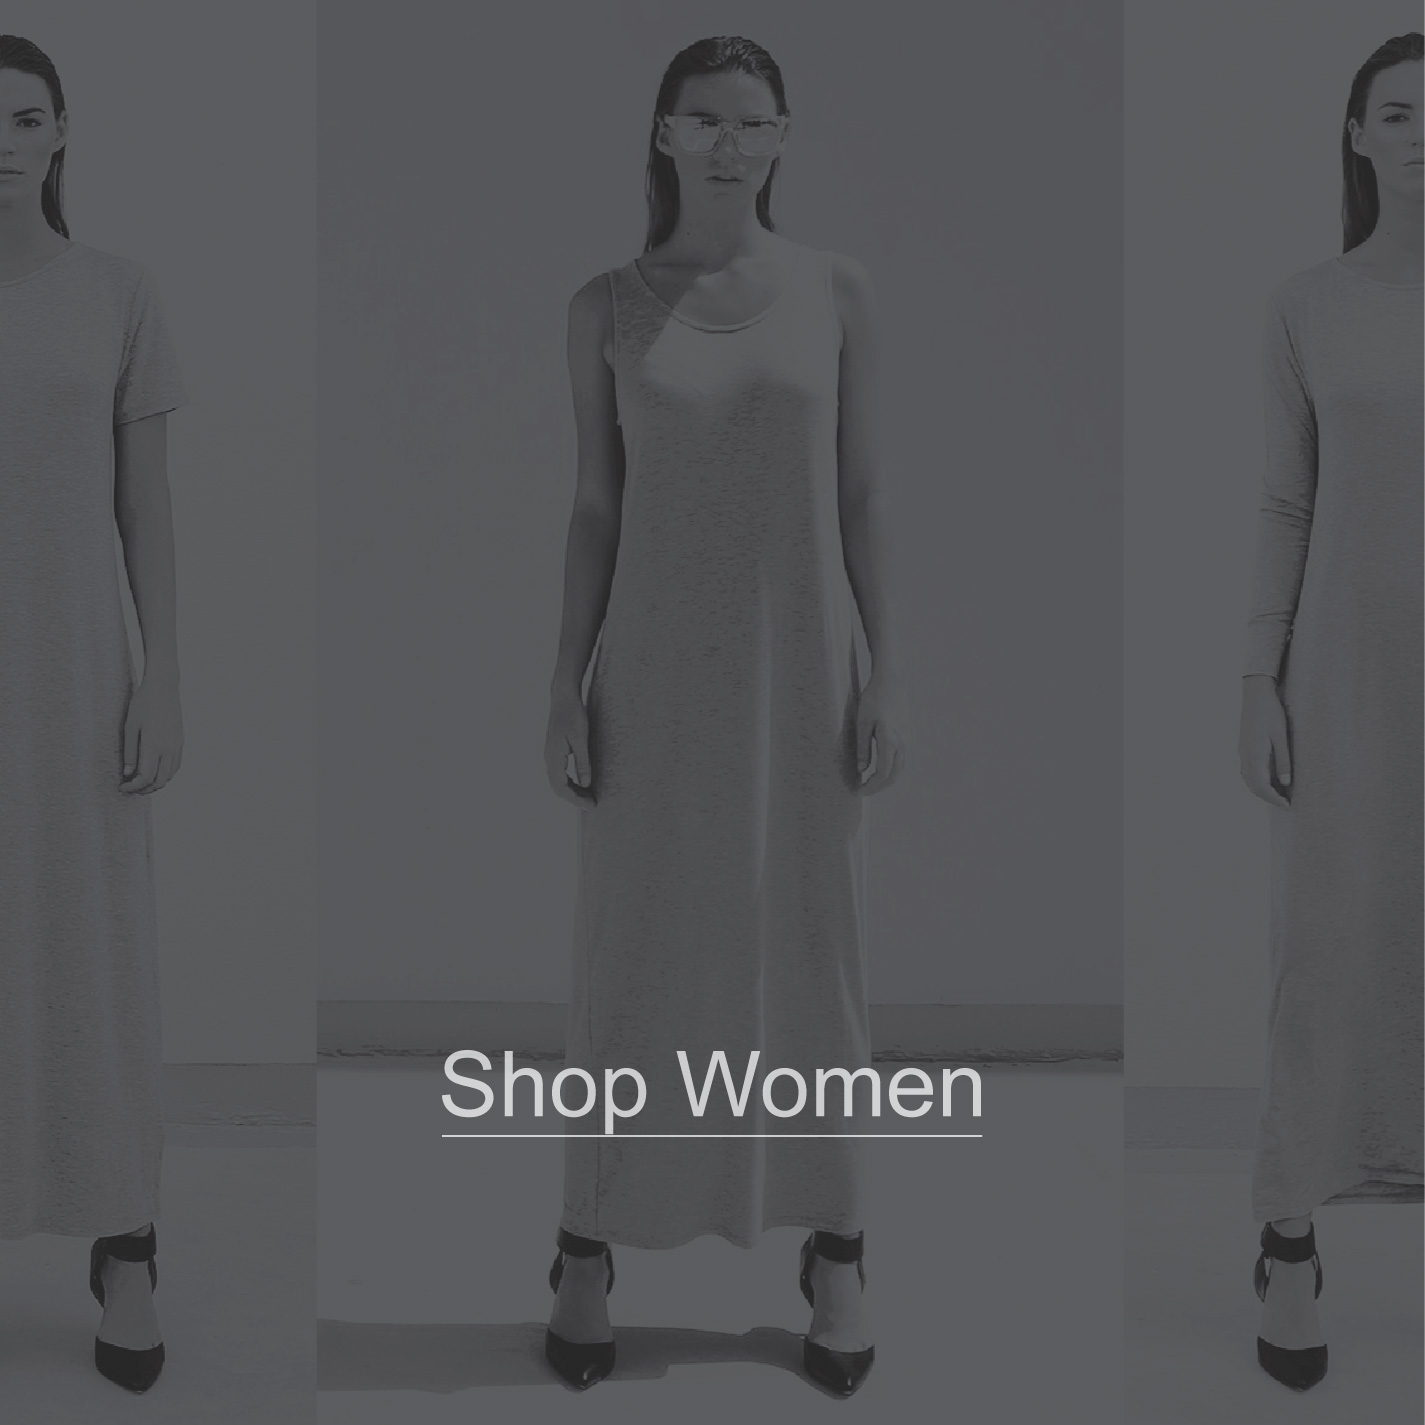 UBERMEN-SHOP-WOMEN-FASHION